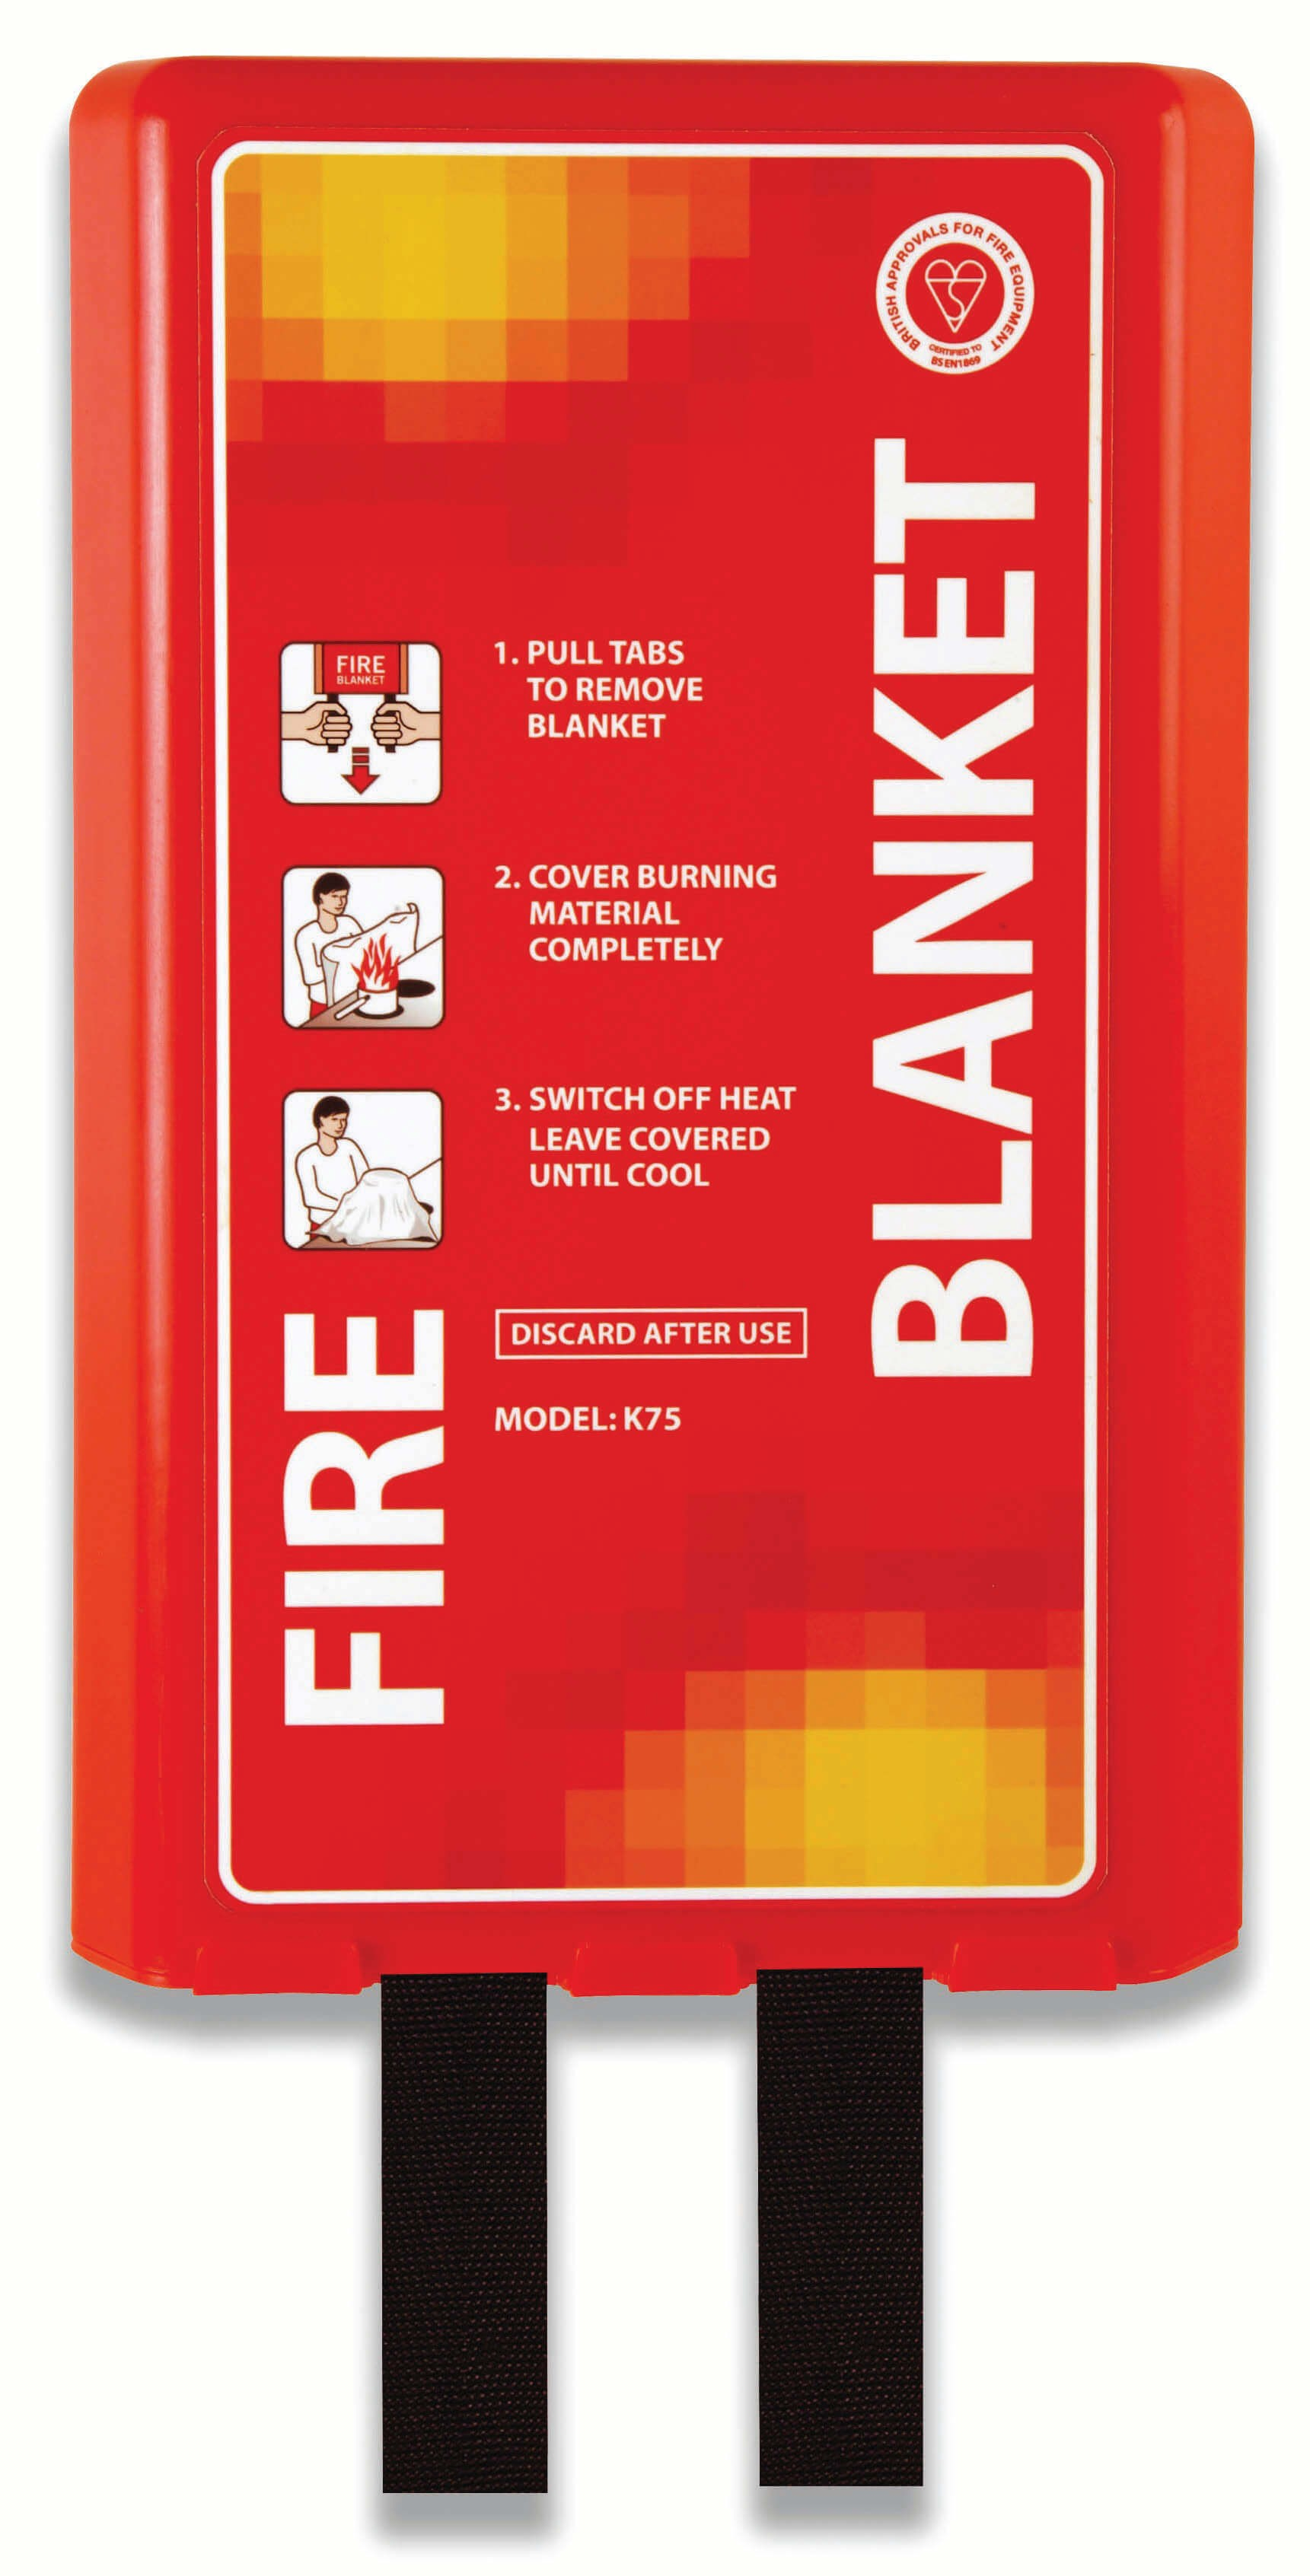 Fire Blanket - Dalvie Systems